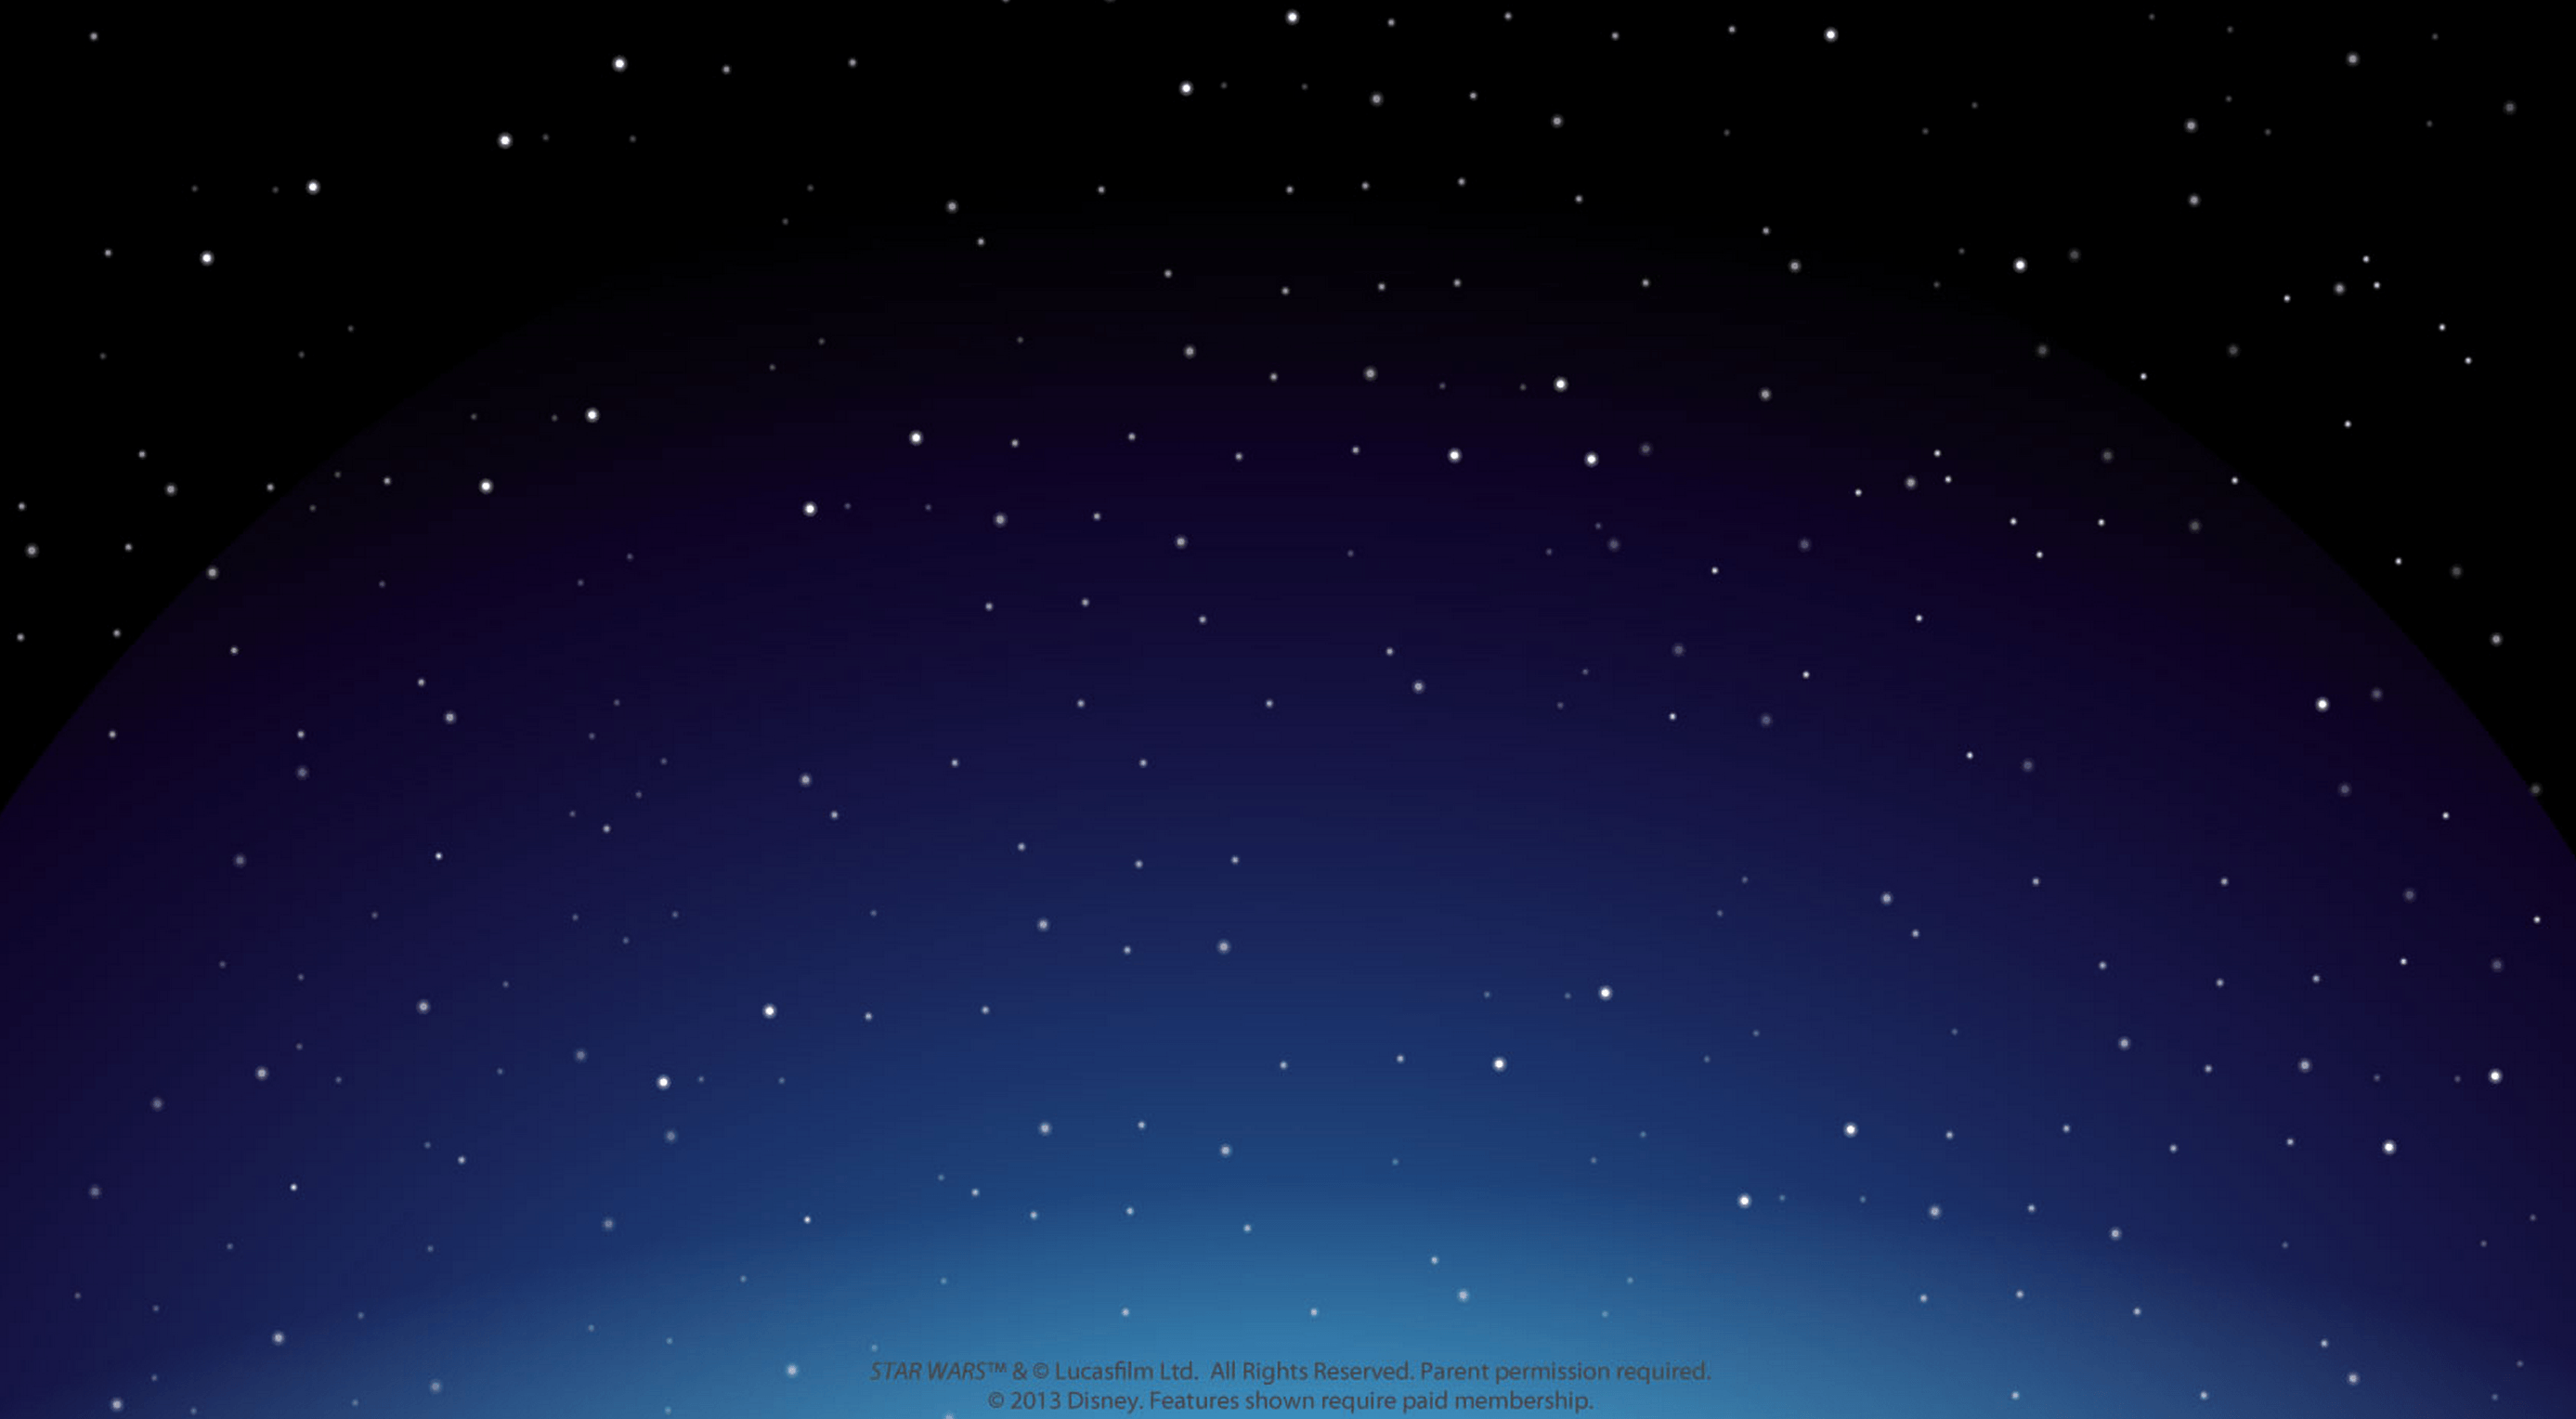 Star Wars Background Png Free Star Wars Background Png Transparent Images 56604 Pngio